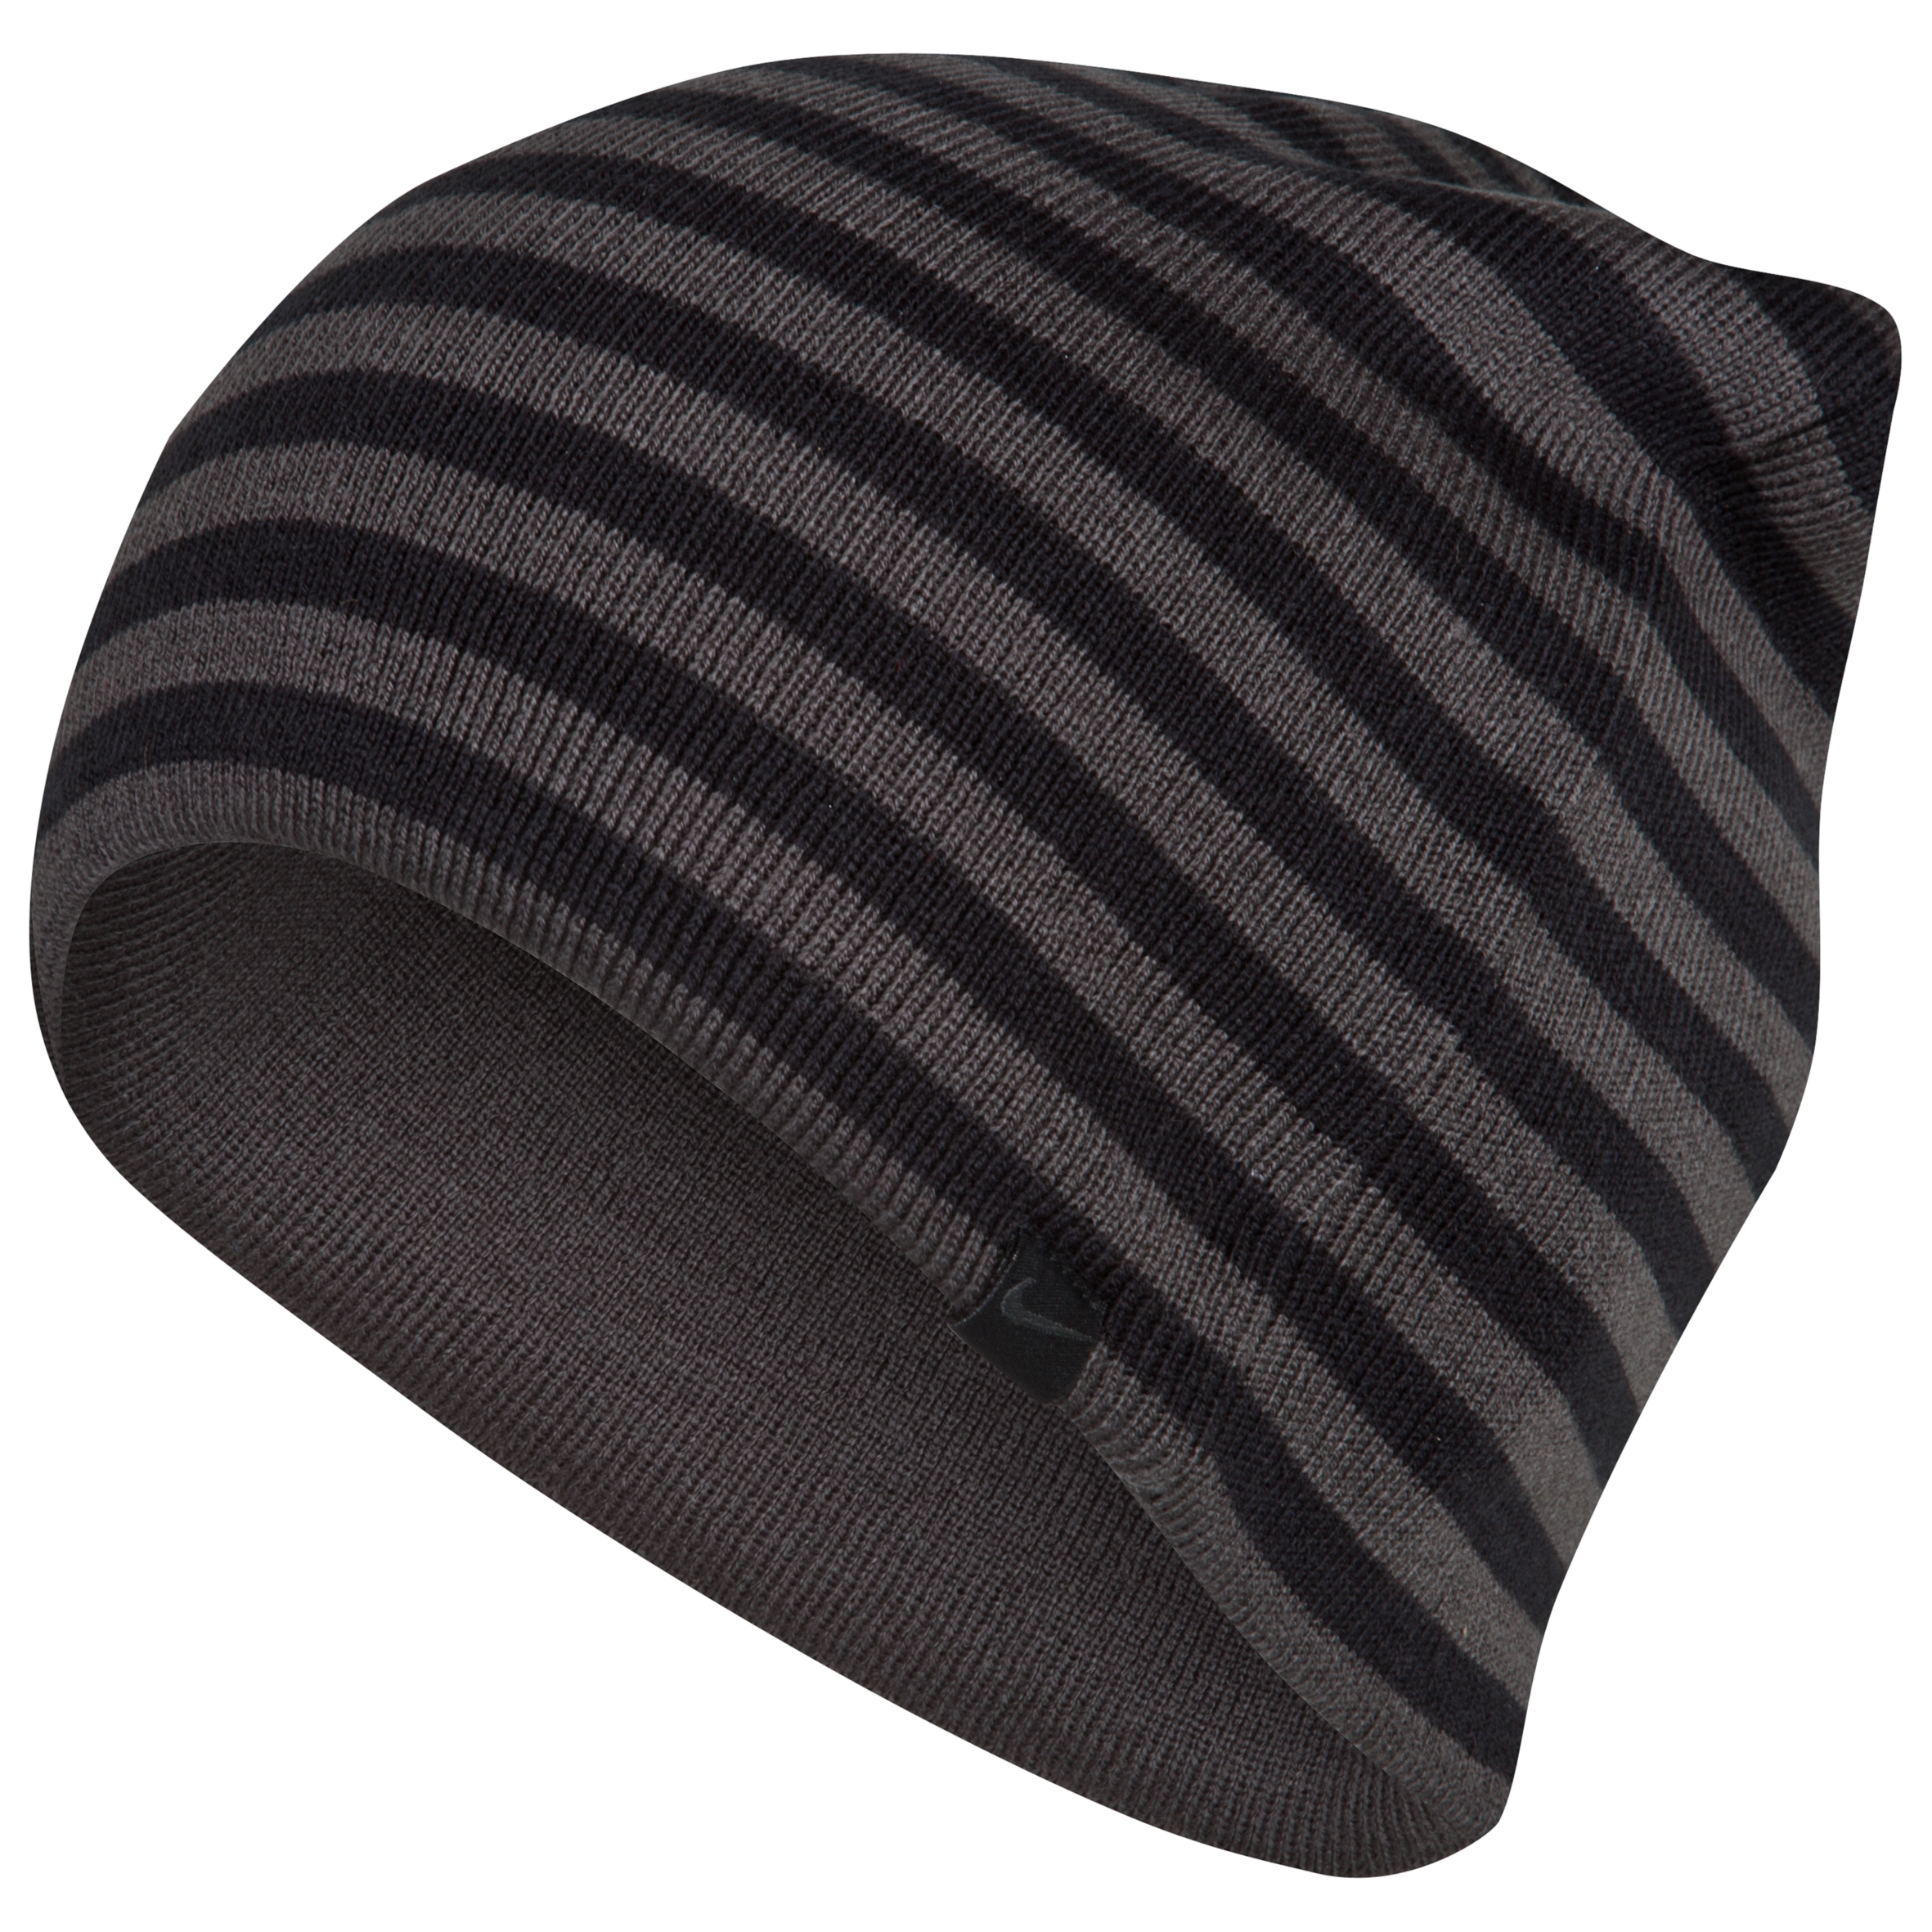 Celtic Stripe/Solid Reversible Beanie - Anthracite/Black/white